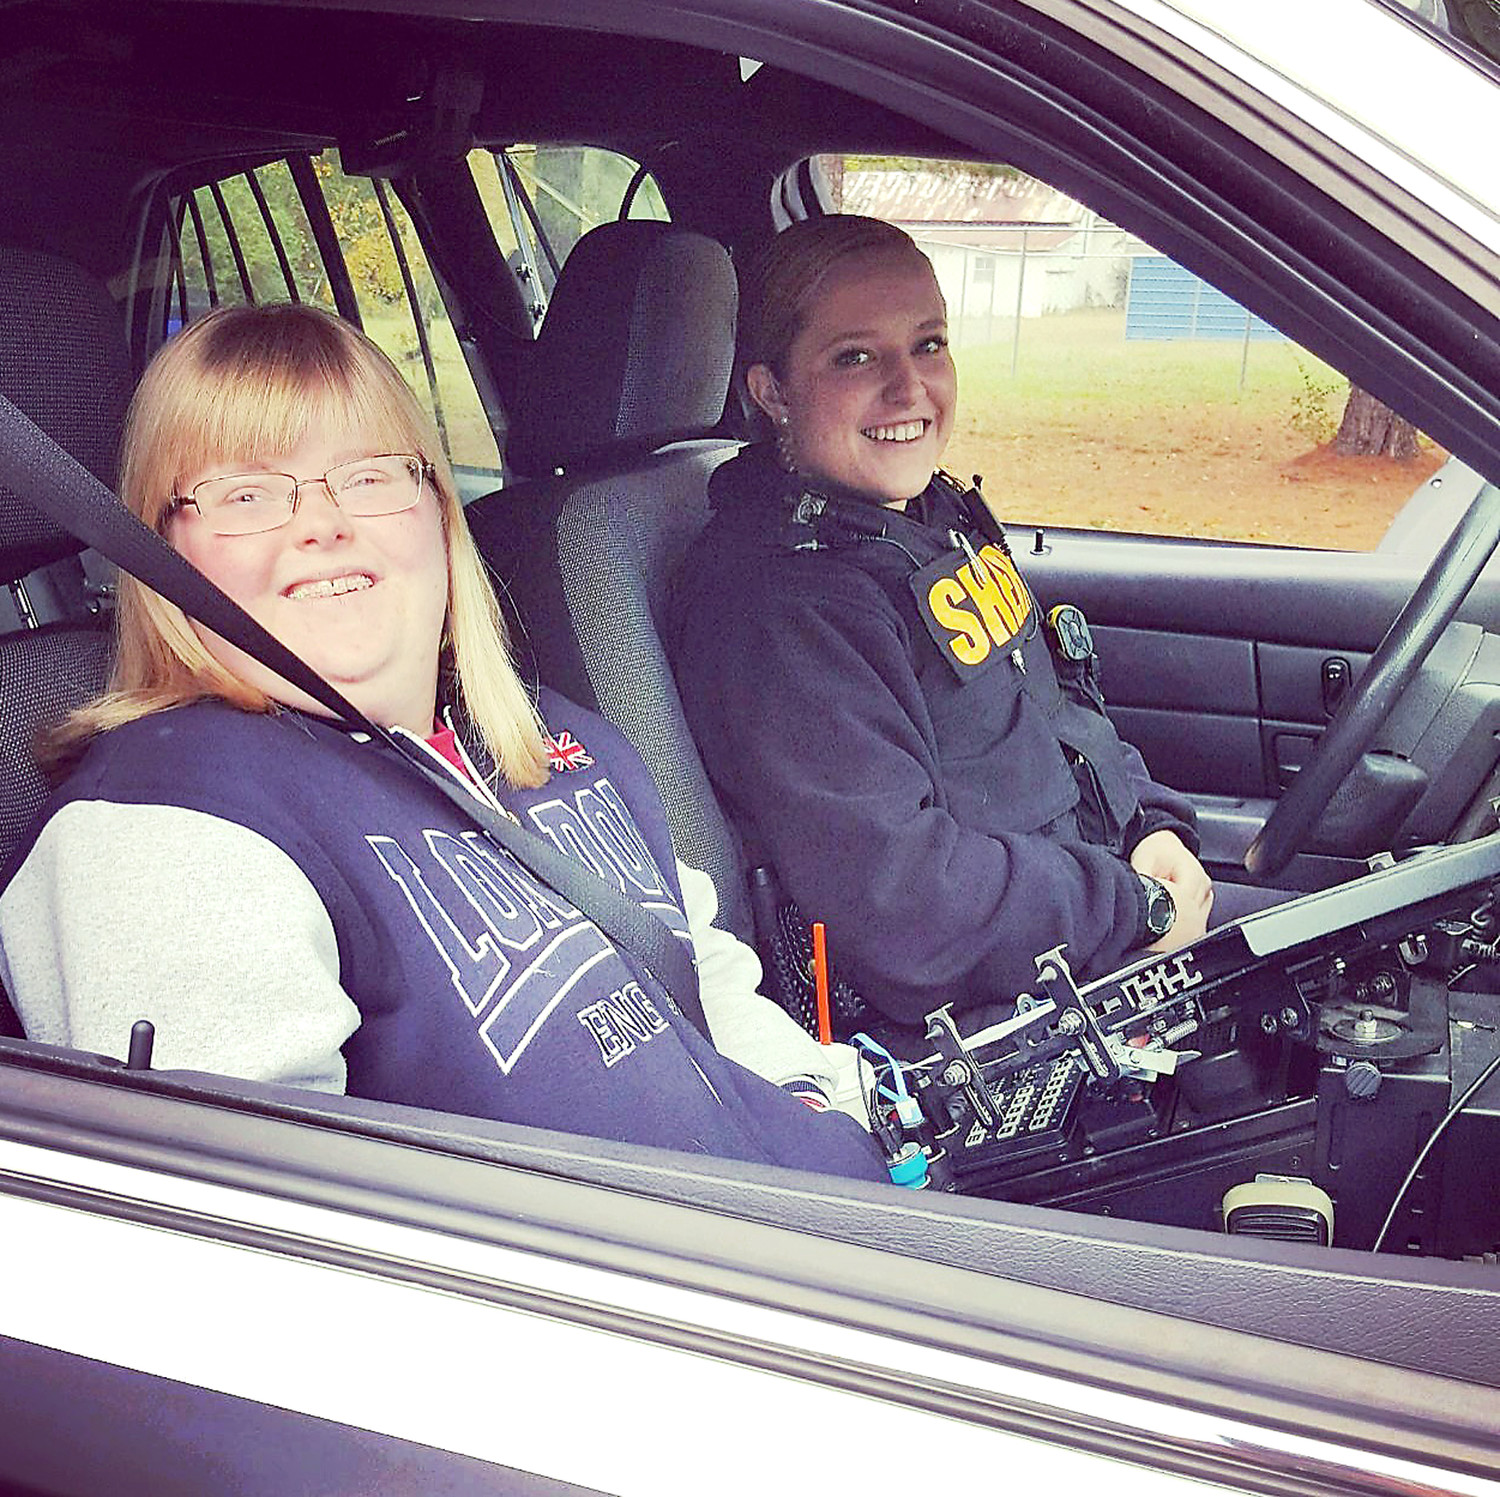 RIDING ALONG WITH HER SISTER, Kersten Fowler said that if she was not in law enforcement, she would want to be in a field where she is helping those with special needs such as her teenage sister, who has Down syndrome.